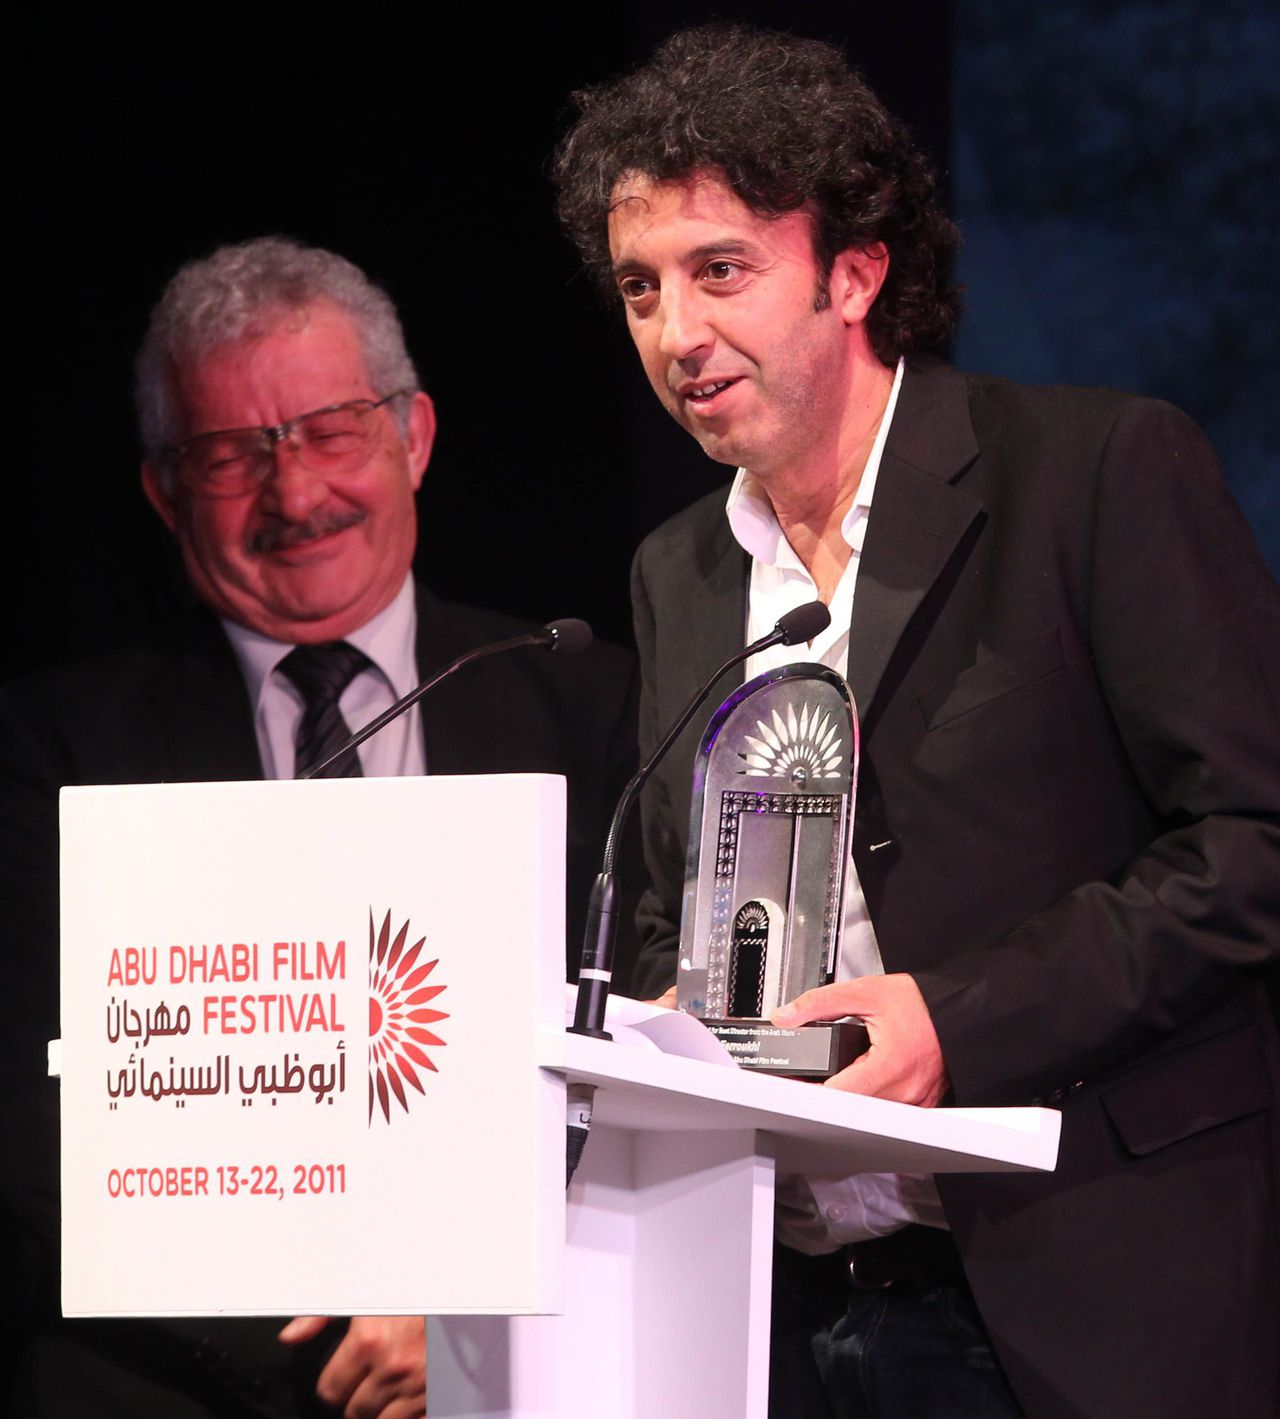 """French director Ismael Ferroukhi speaks at the podium after winning an award on his film """"Free Men"""" (Les Hommes Libres) during the closing ceremony of the Abu Dhabi Film Festival in the United Arab Emirates' capital on October 21, 2011. AFP PHOTO / KARIM SAHIB"""